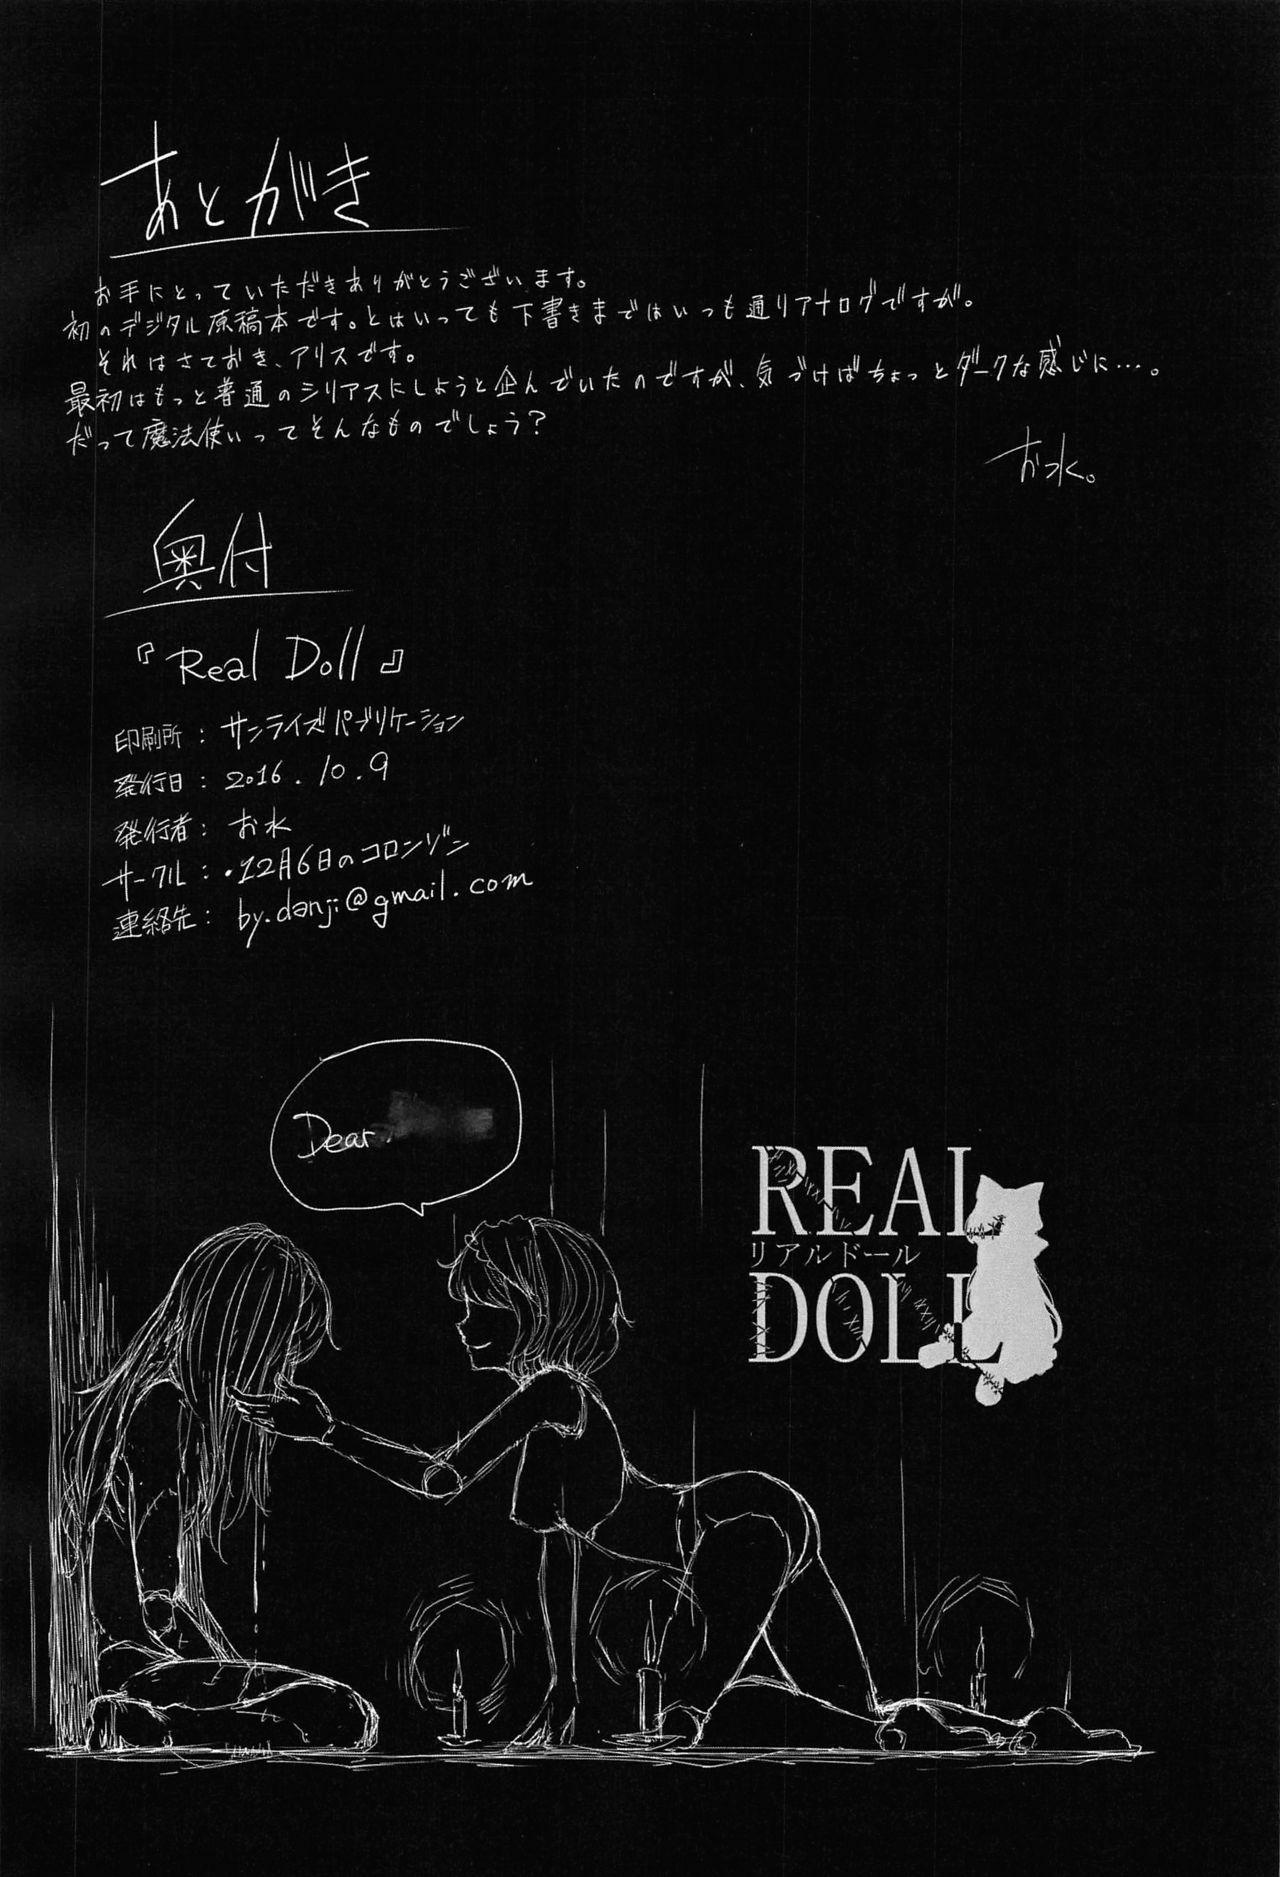 REAL DOLL 14